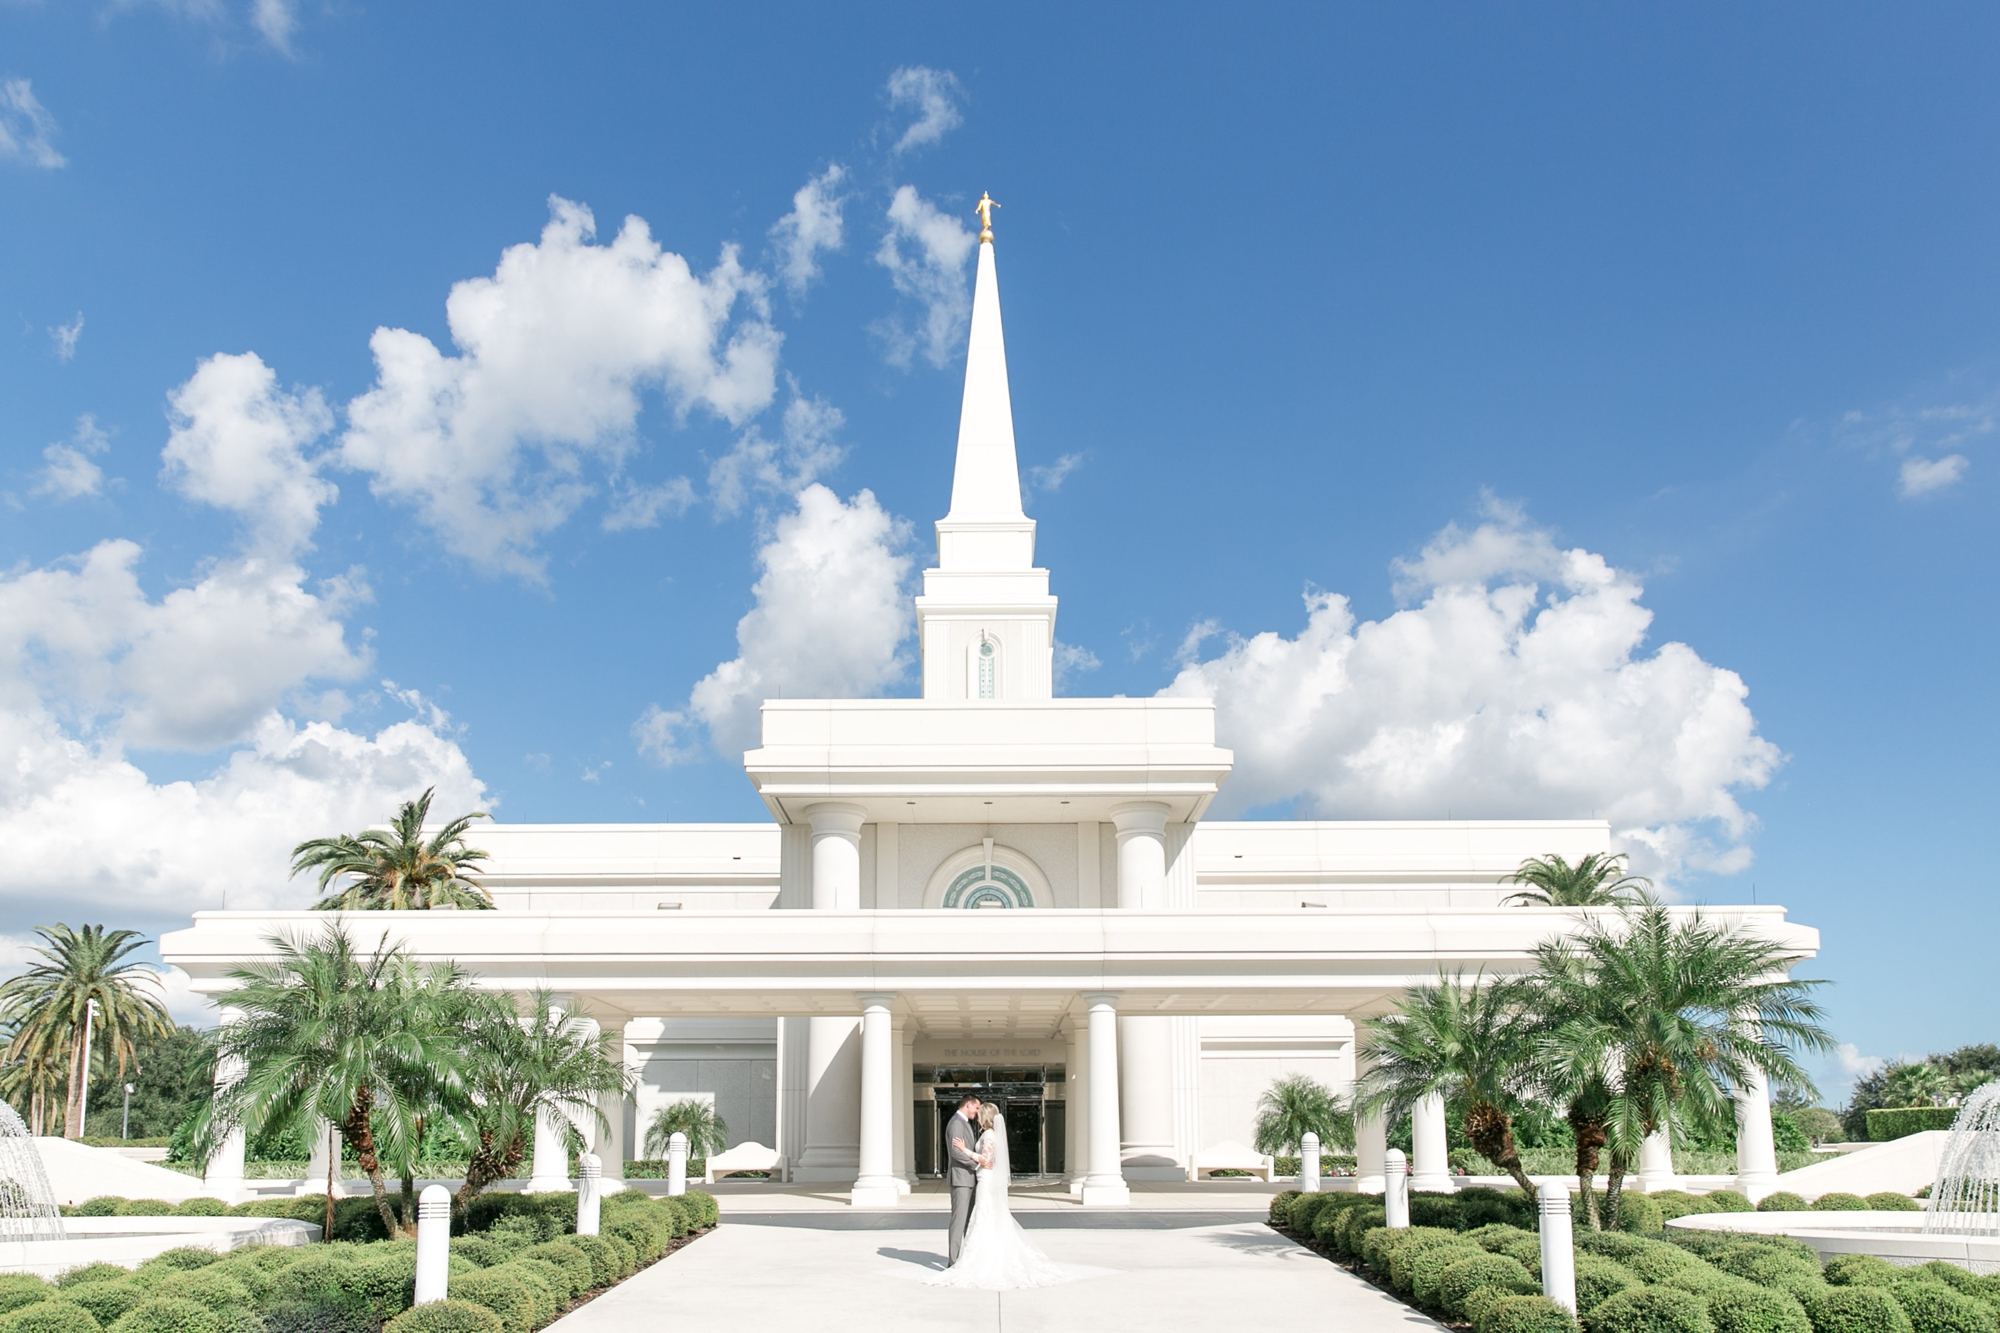 The Church of Jesus Christ of Latter-day Saints in Windermere FL